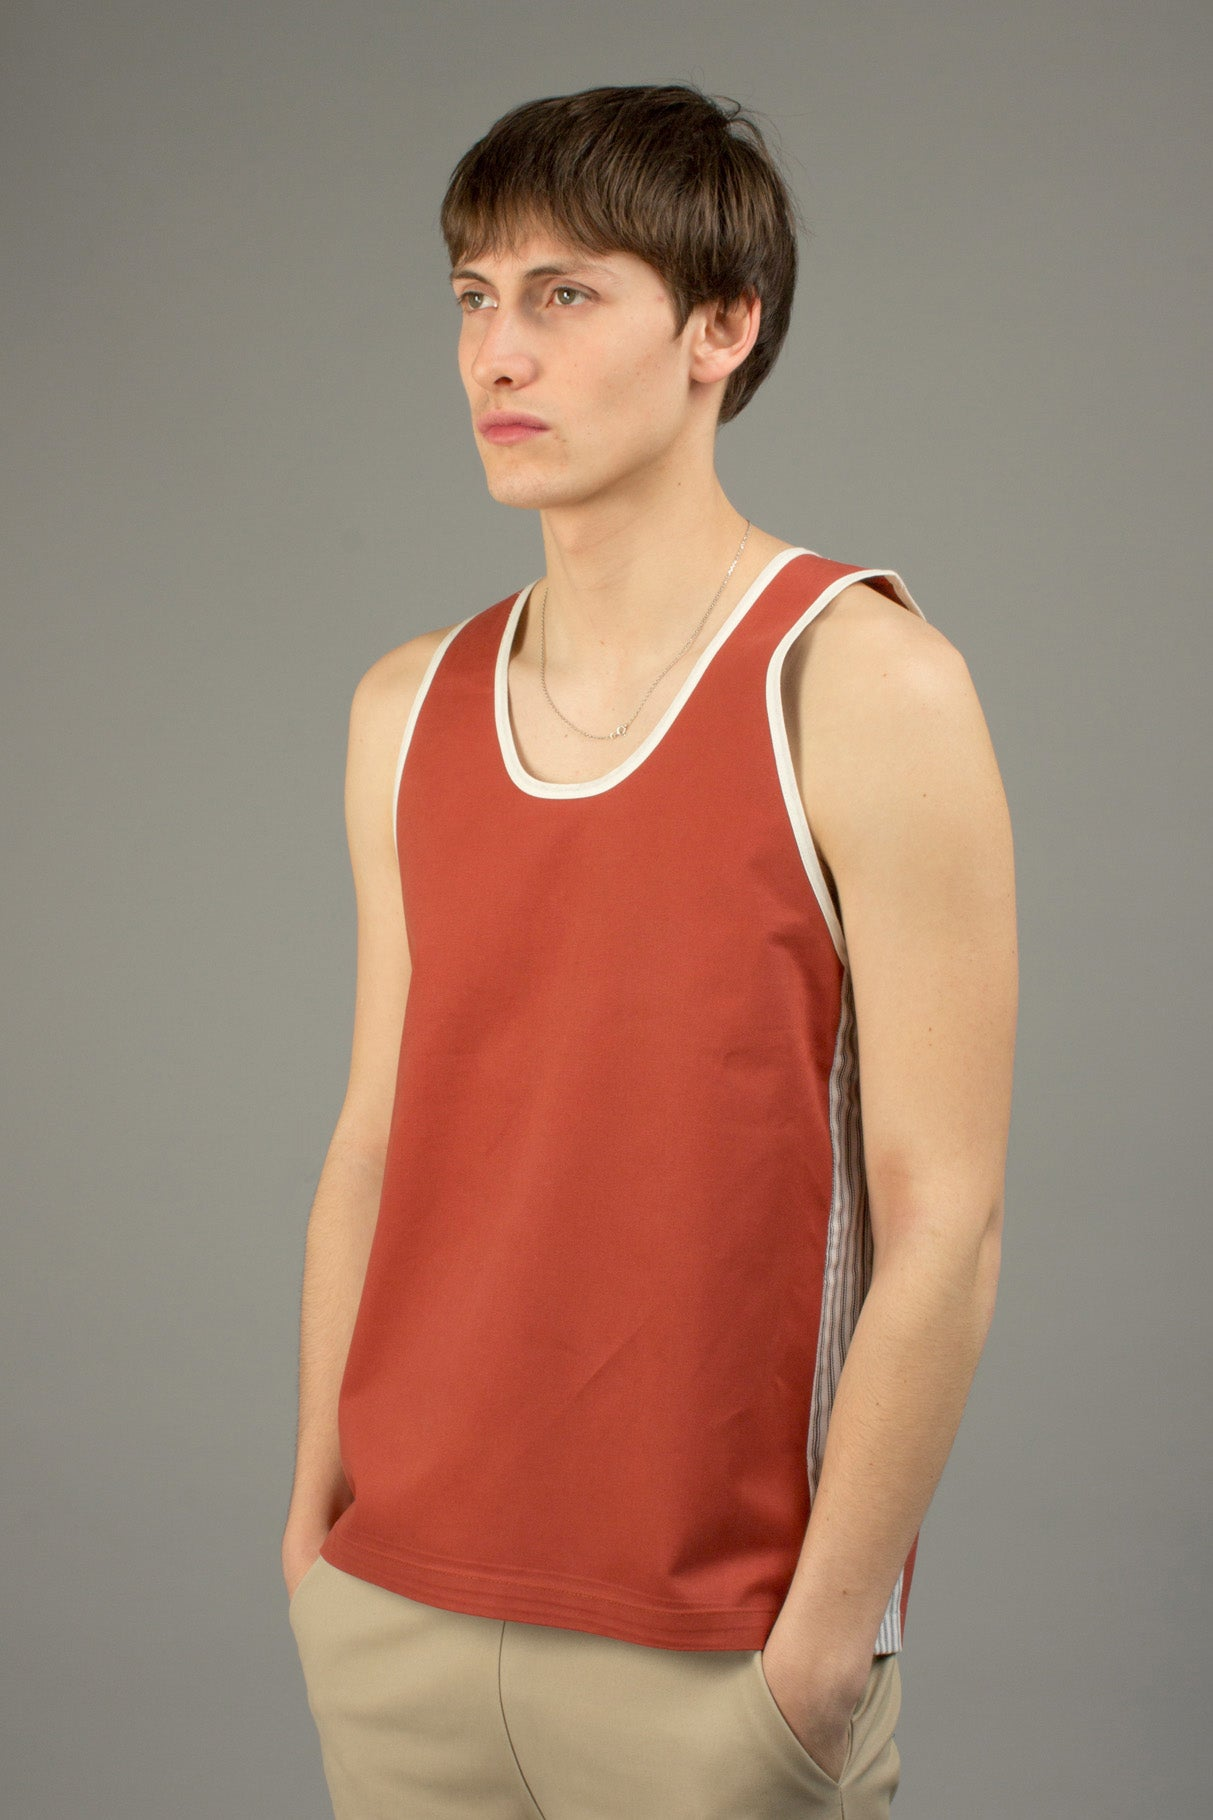 TWILL BRICK BASKETBALL JERSEY